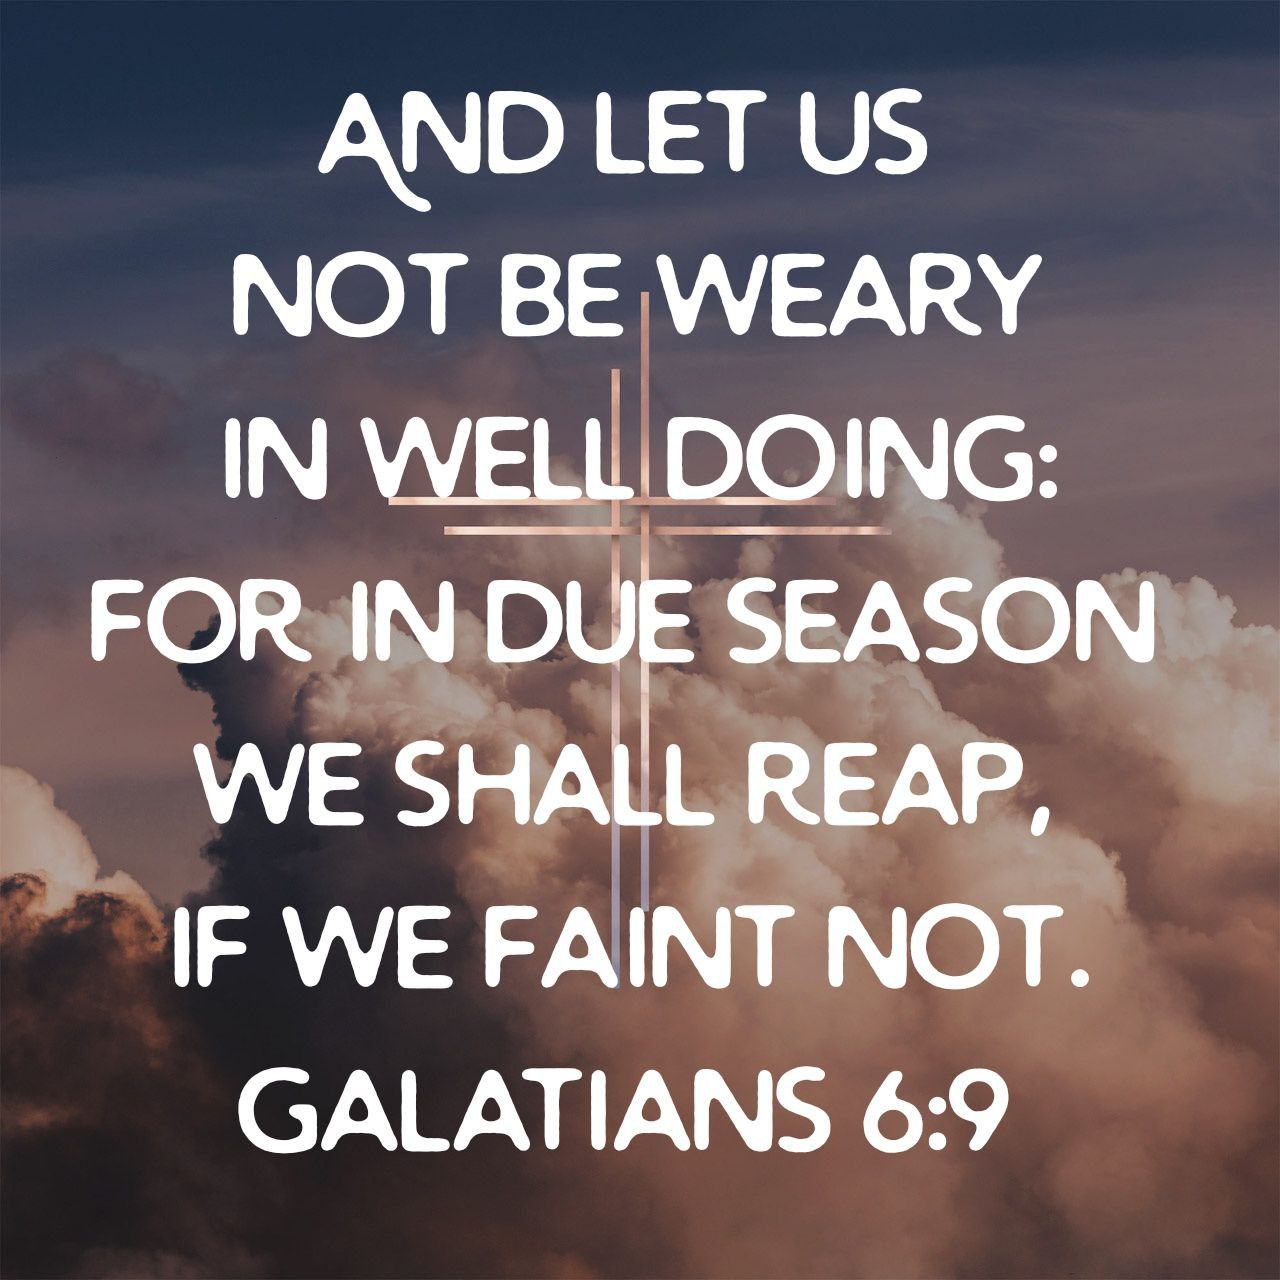 And let us not be weary in well doing: for in due season we shall reap, if we faint not. Galatians 6:9 KJV | Galatians 6 9, Galatians 6, Galatians